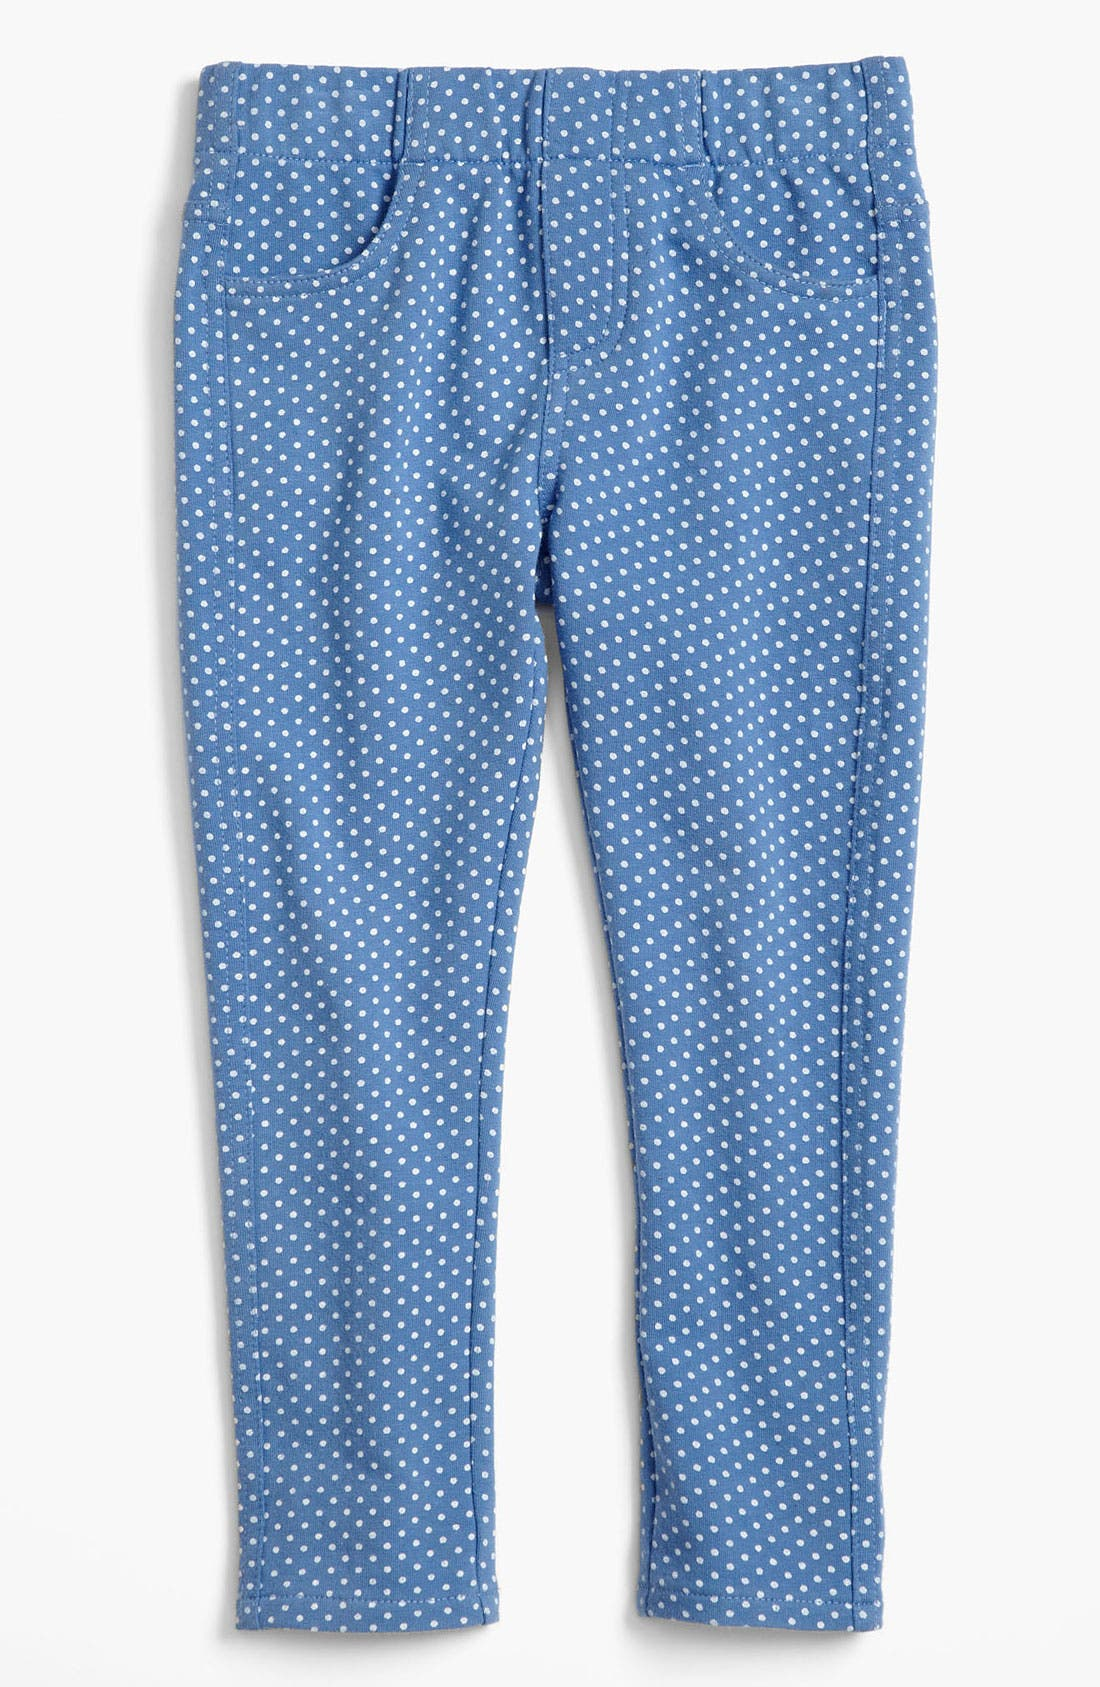 Main Image - Tucker + Tate 'Sadie' Print Jeggings (Toddler Girls)